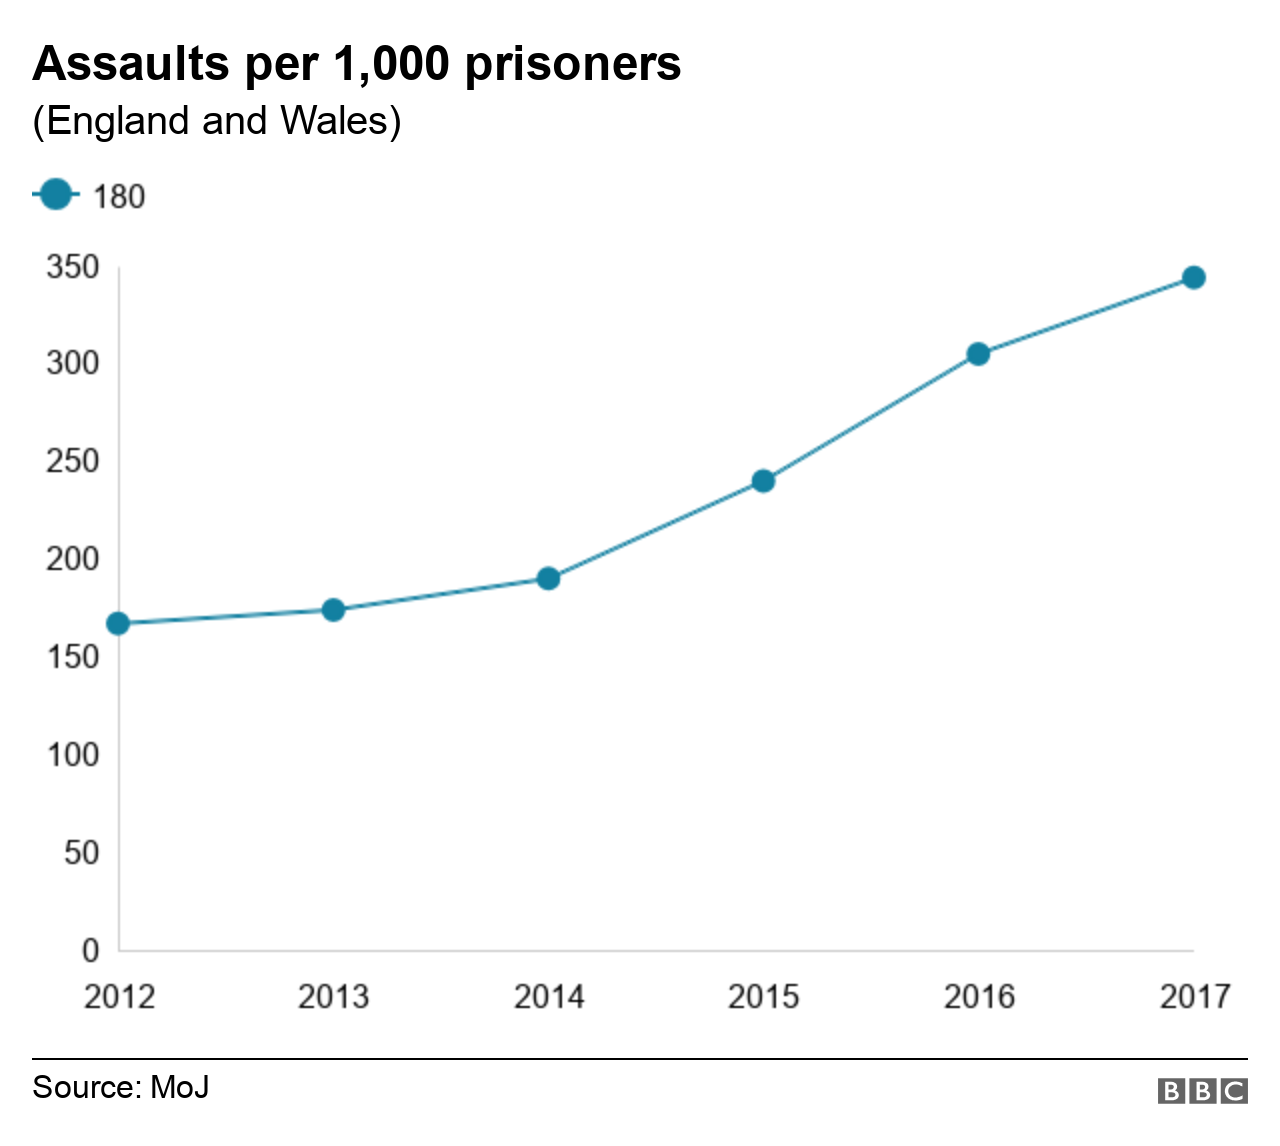 Graph showing assaults per 1,000 prisoners each year